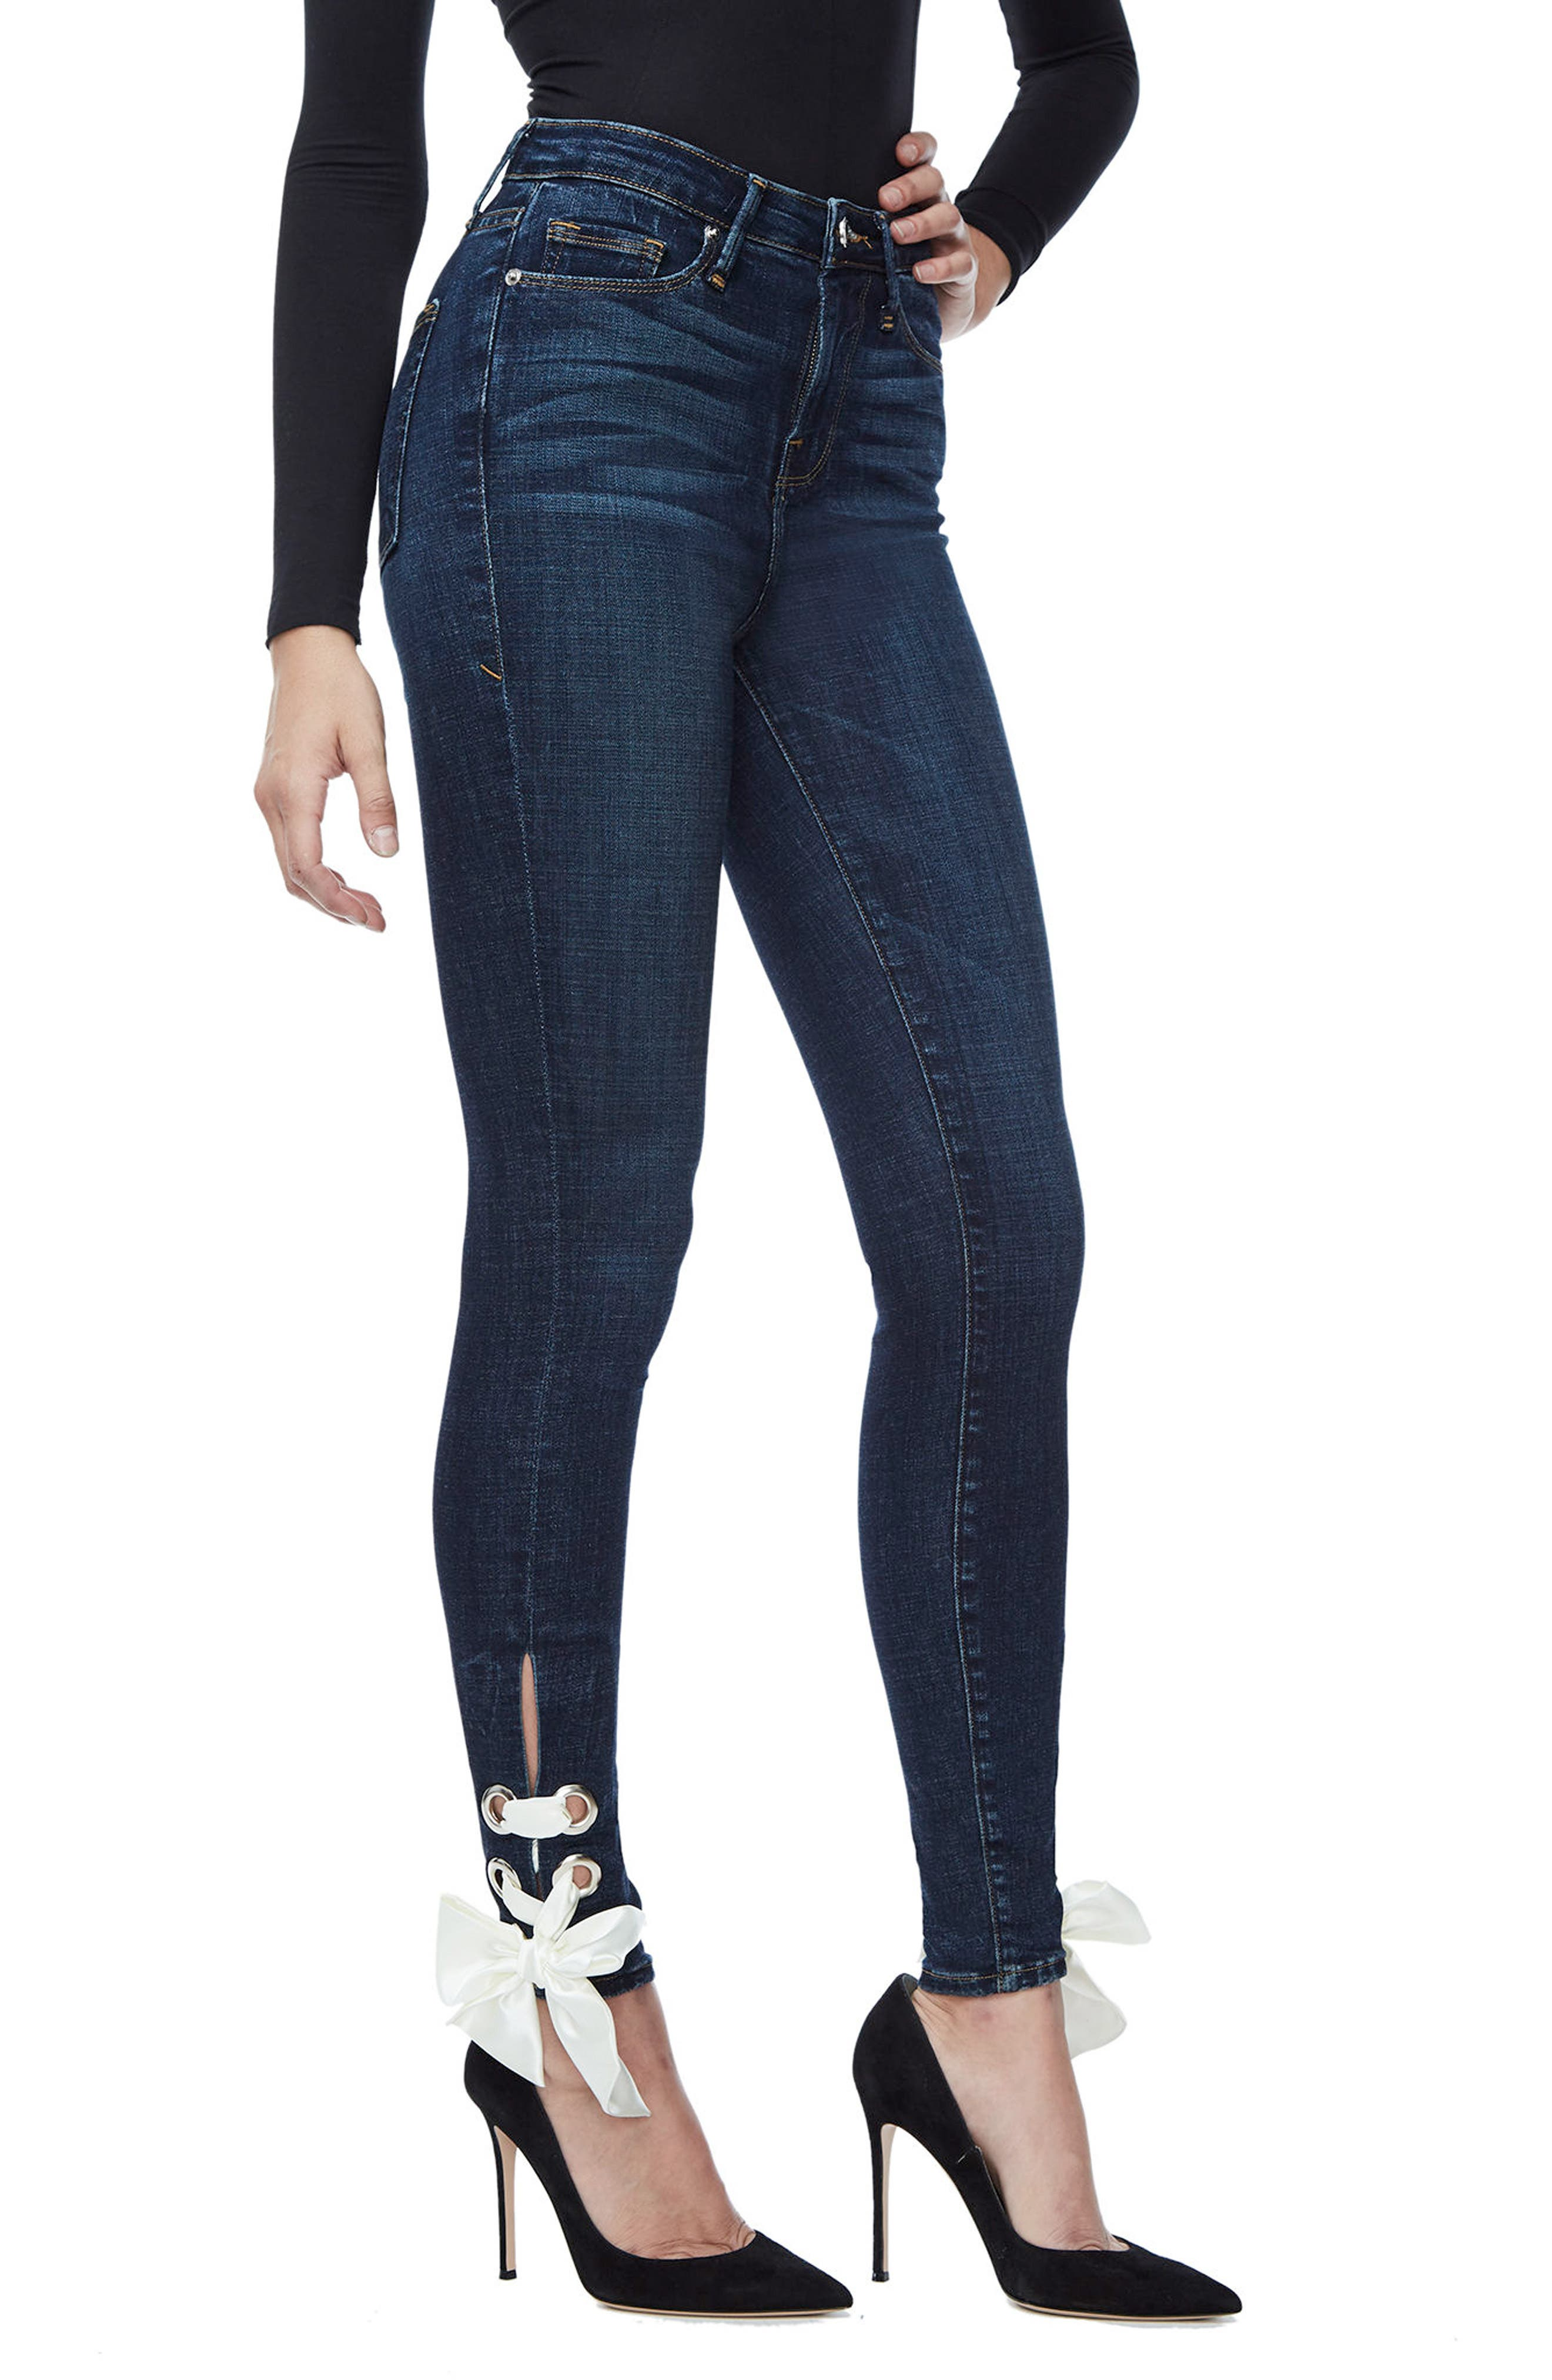 Alternate Image 3  - Good American Good Waist Ultra High Waist Ankle Skinny Jeans (Blue 102) (Regular & Plus Size)